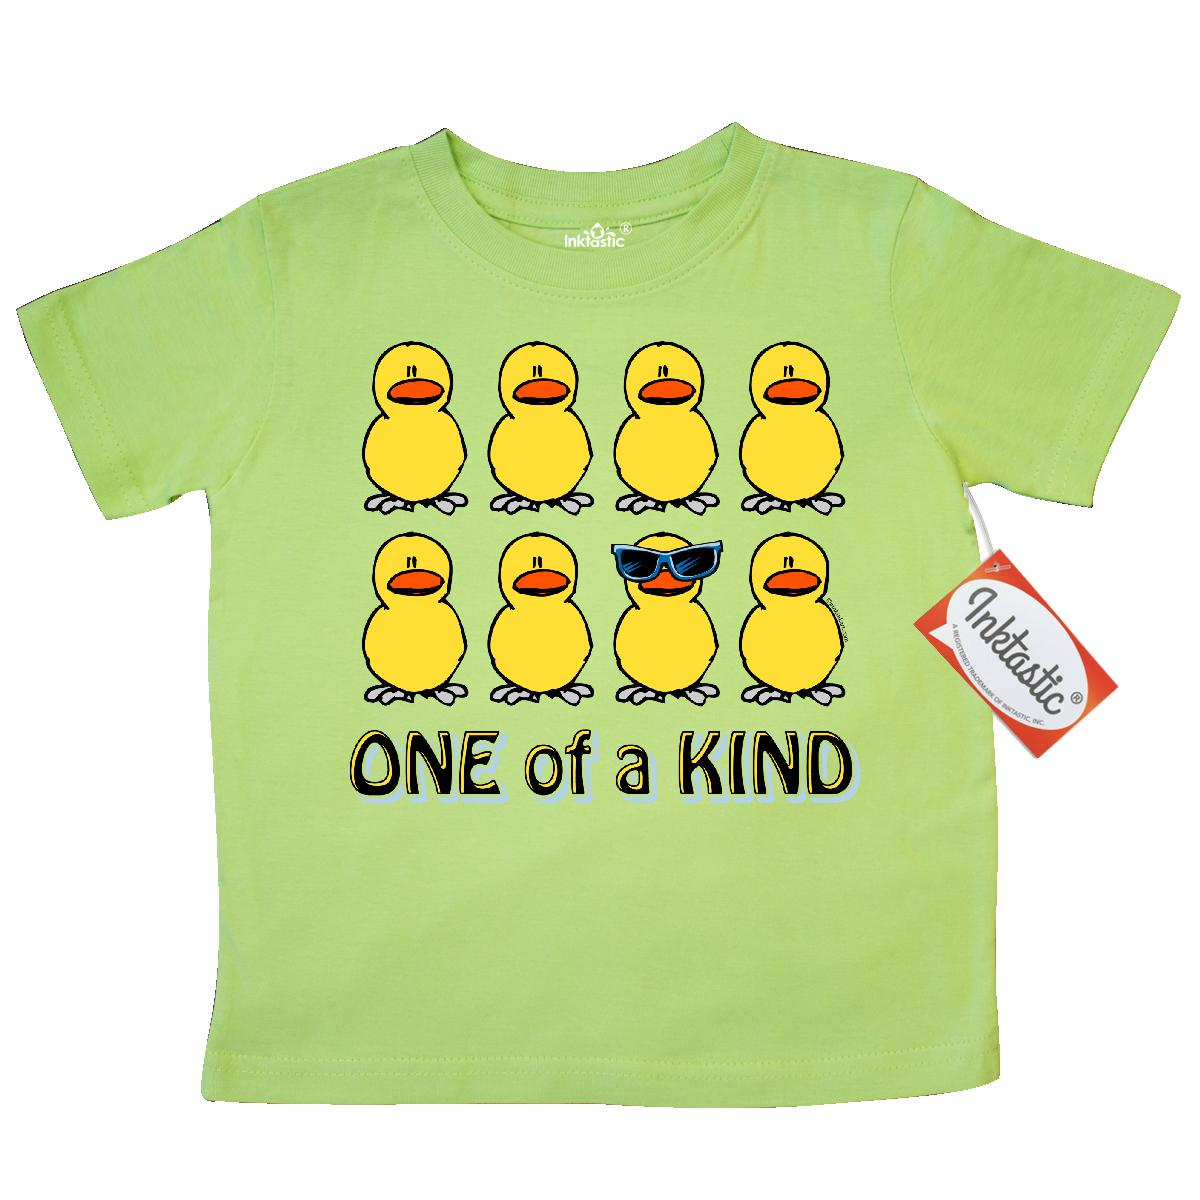 Inktastic One Of A Kind Toddler T-Shirt duck cute sunglasses unique funny pinkinkartkids easter 1st baby kids bunny egg chick tees. gift child preschooler kid clothing apparel